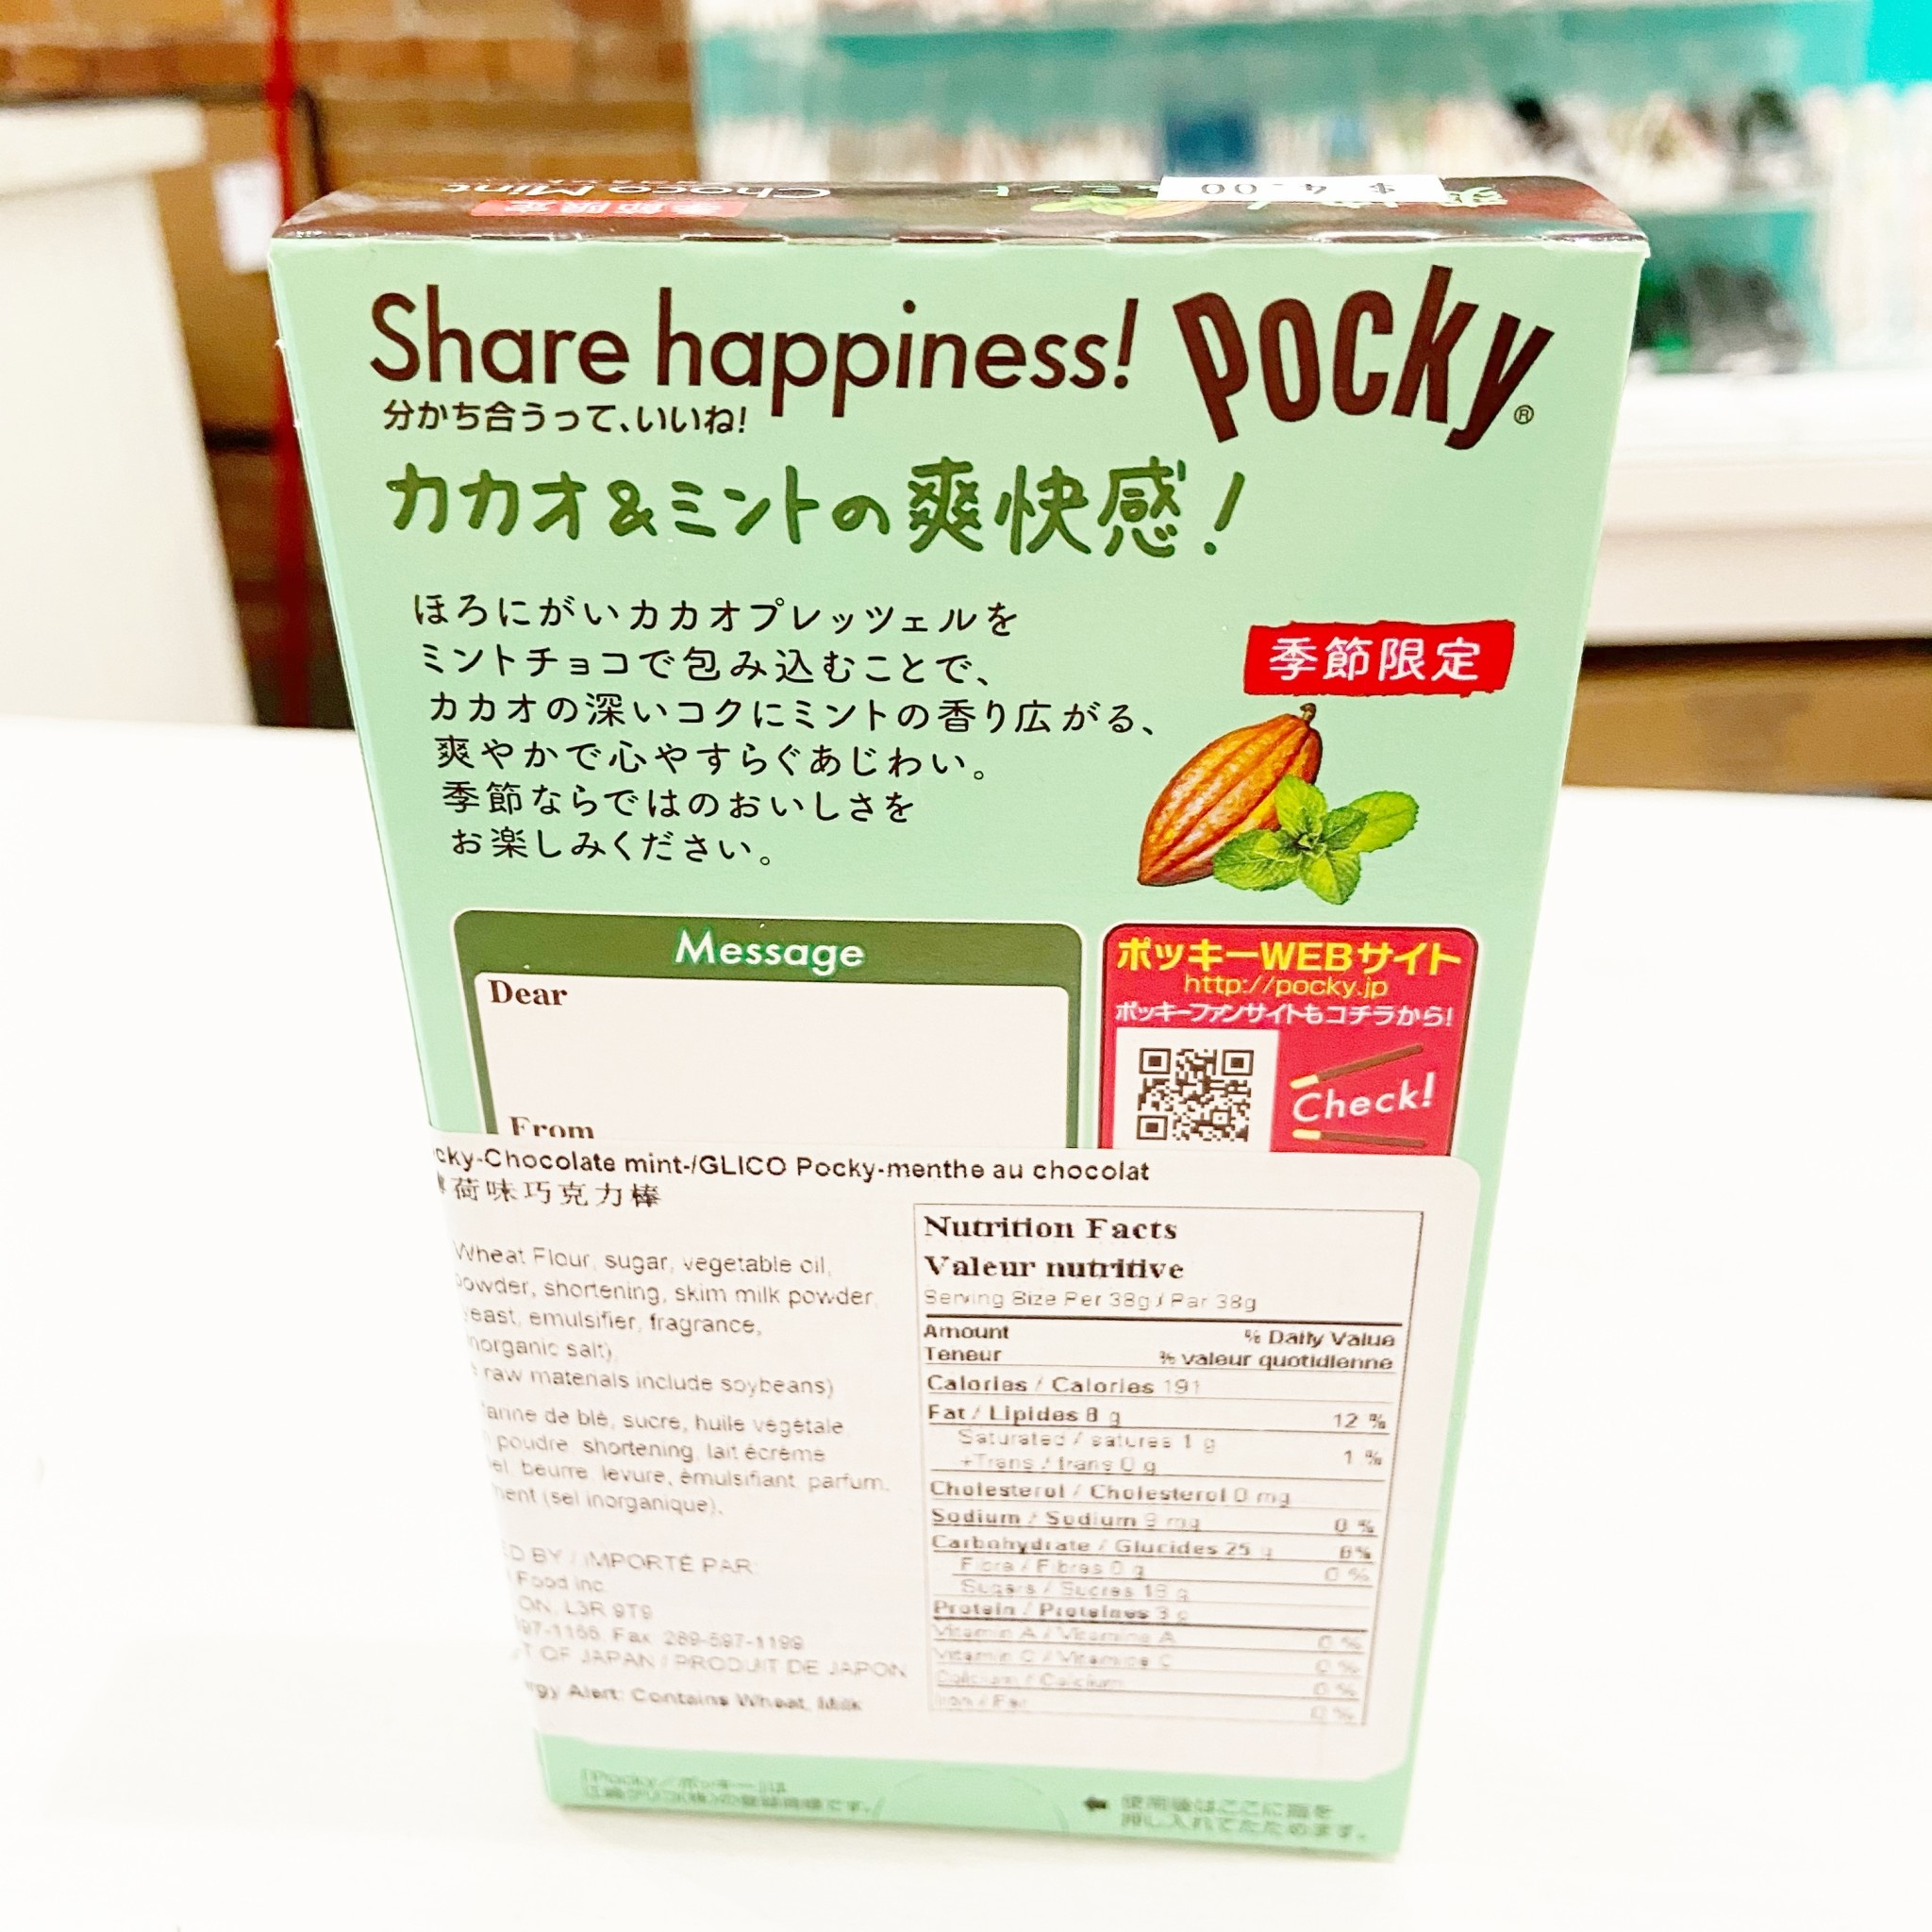 Glico Pocky - Chocolate Mint